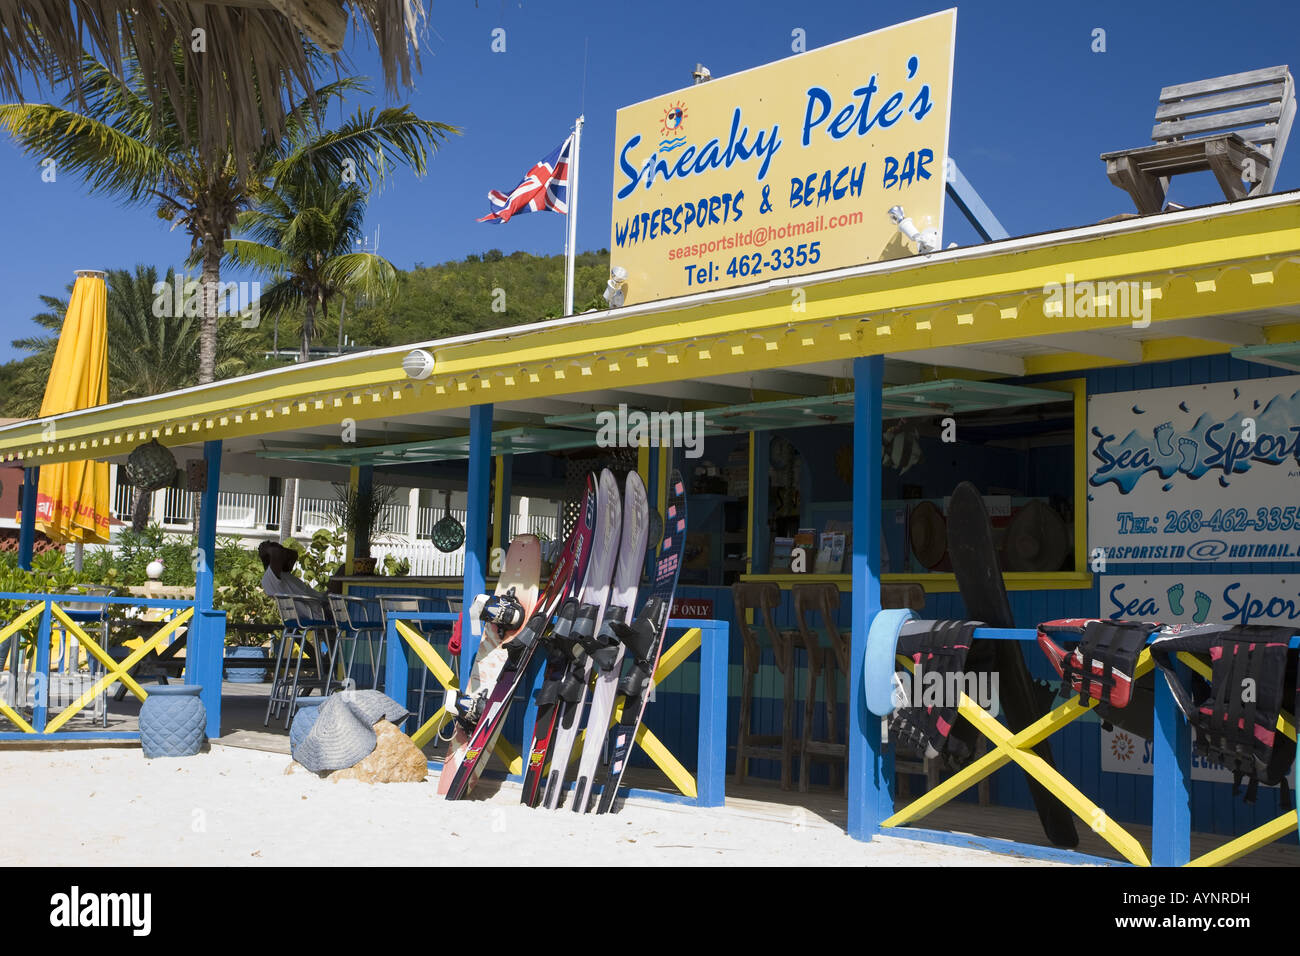 Sneaky Pete's Watersports Centre, Dickinson Bay, Antigua